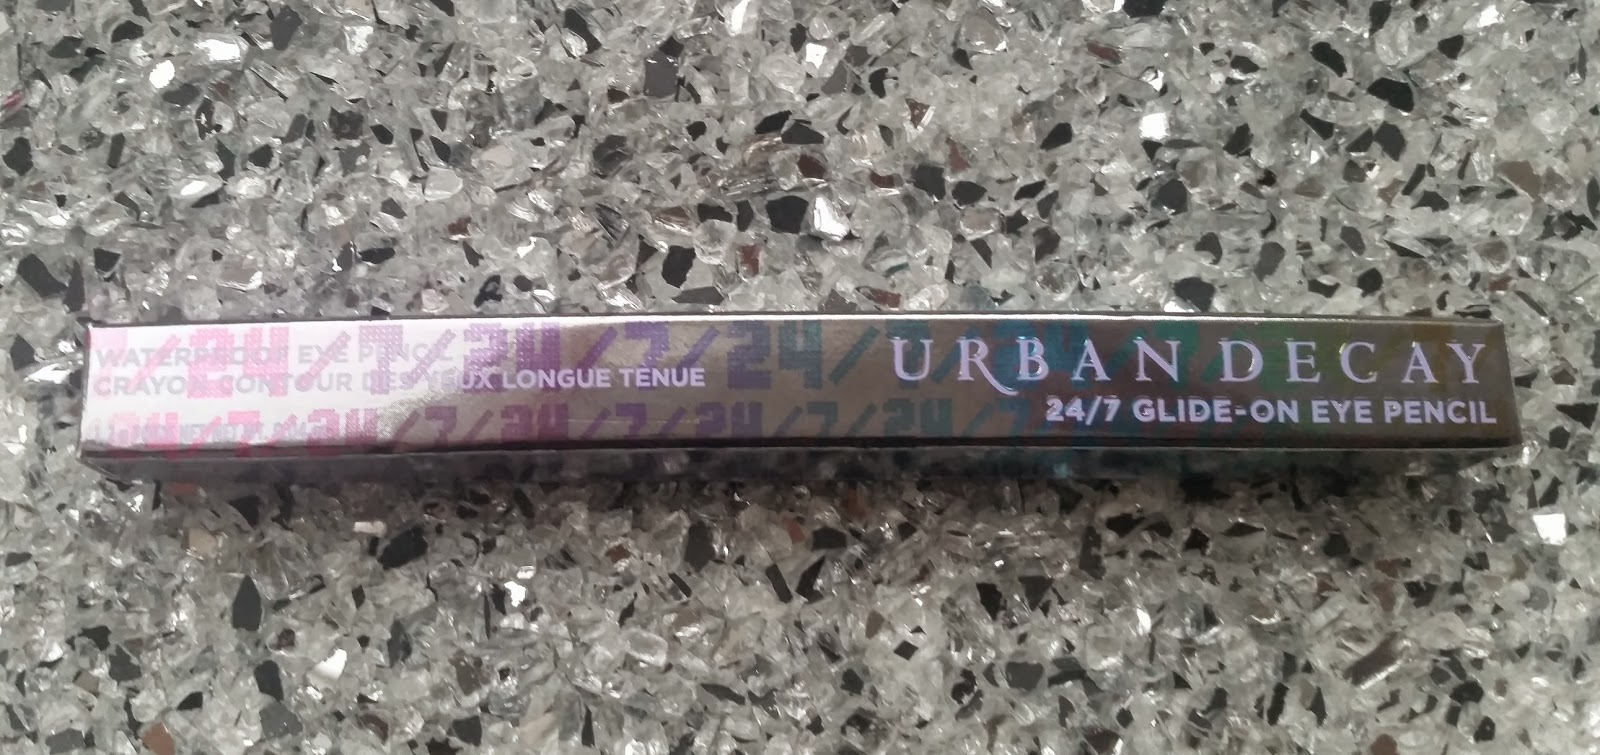 Urban Decay Glide-on Eye Pencil - www.annitschkasblog.de